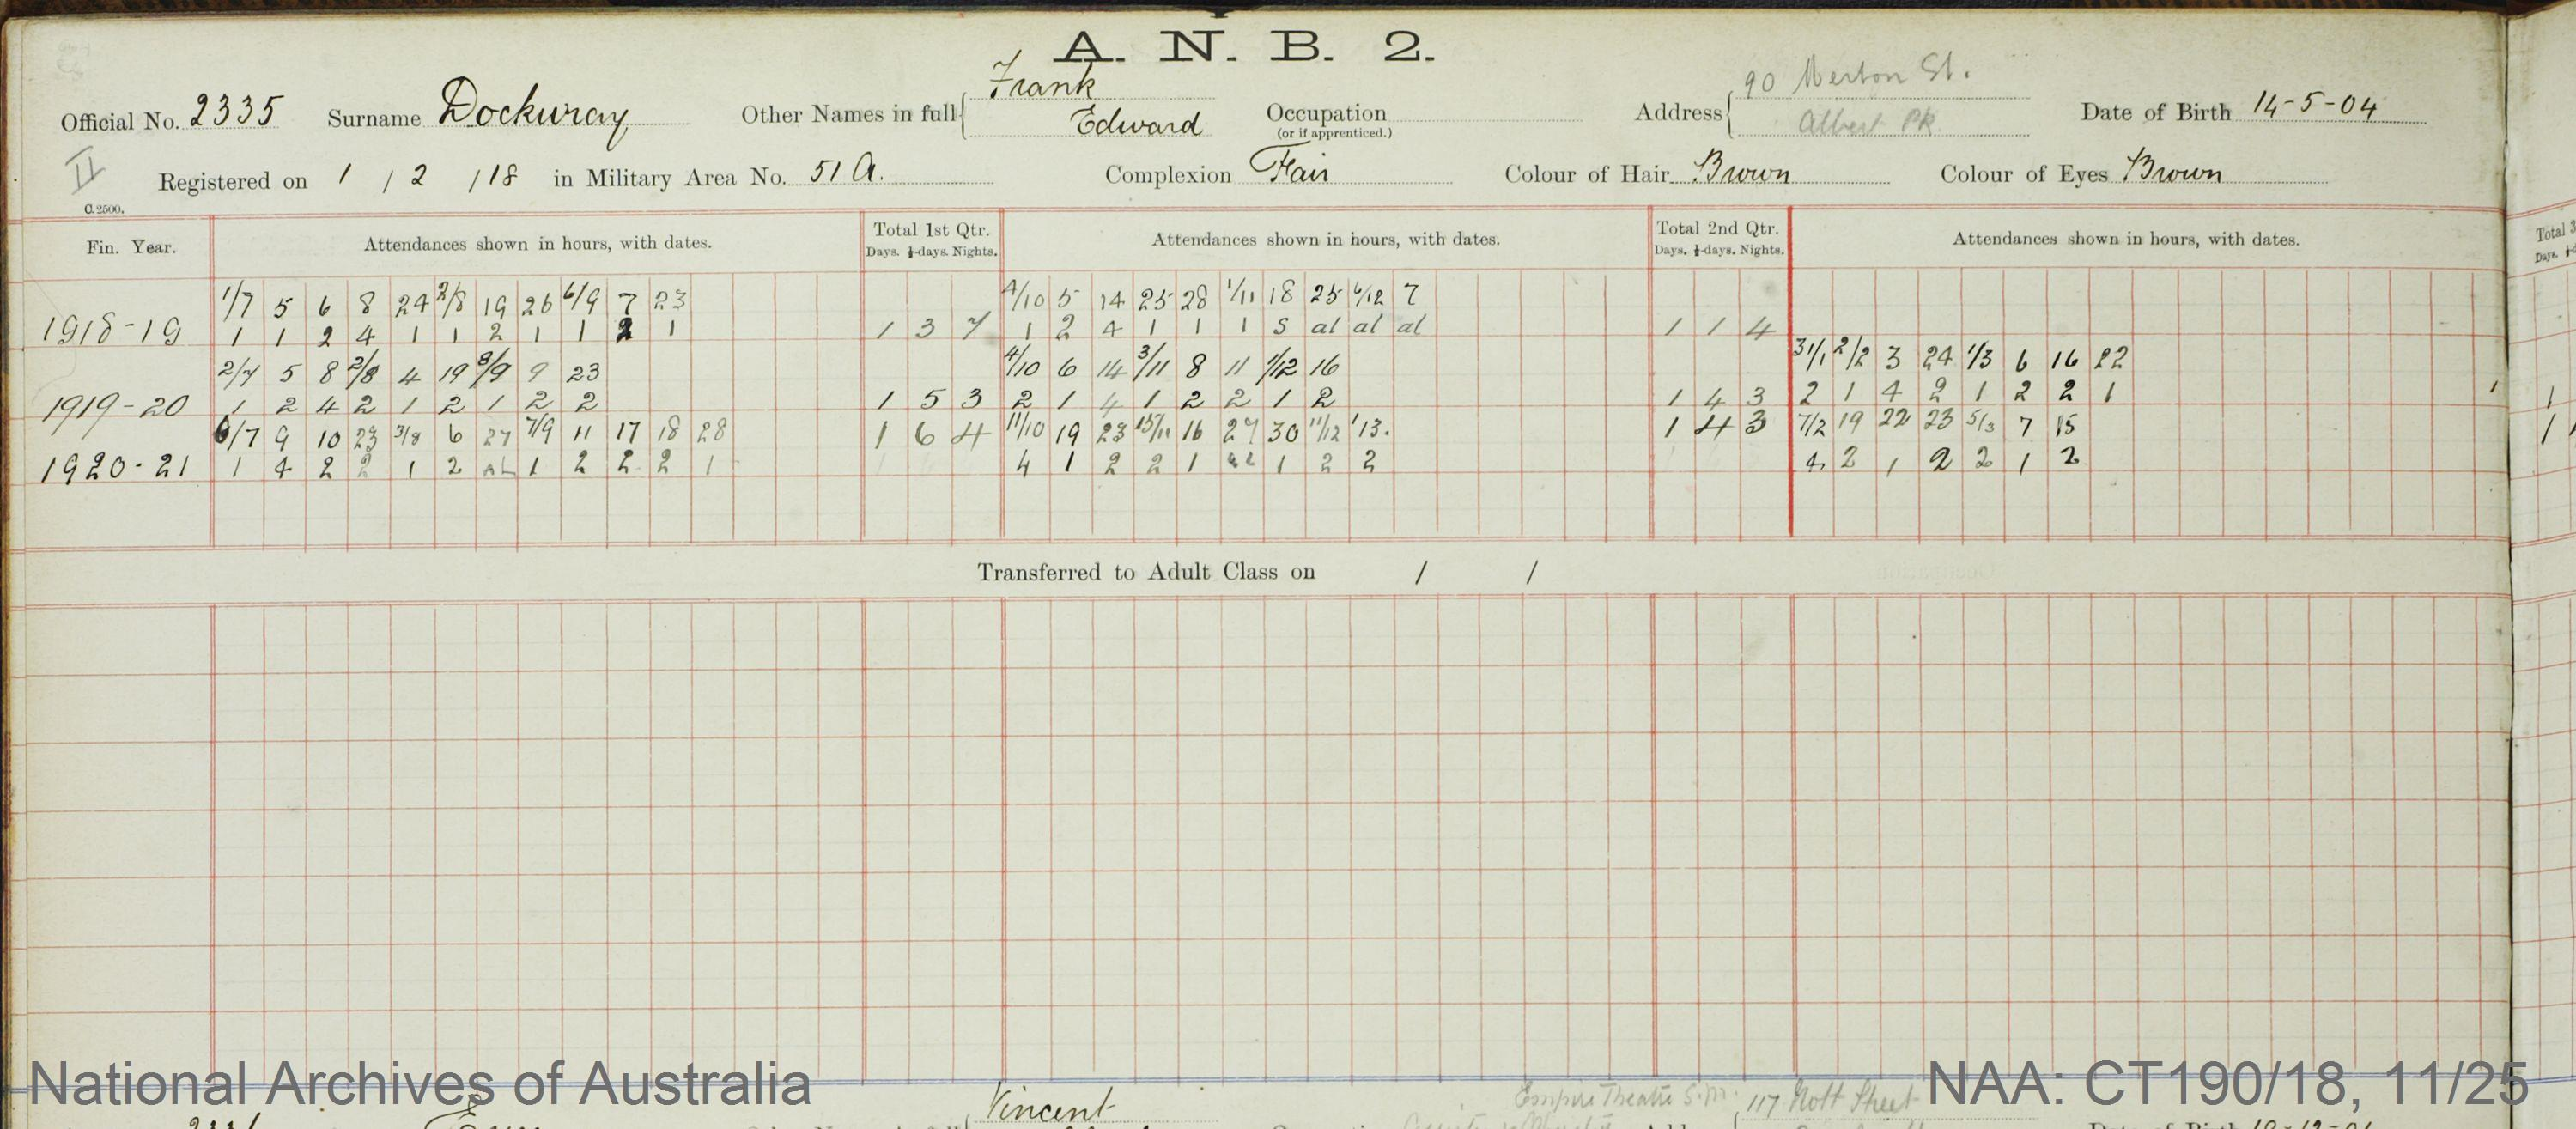 SURNAME - DOCKWRAY;  GIVEN NAME(S) - Frank Edward;  OFFICIAL NUMBER - 2335;  DATE OF BIRTH - 14 May 1904;  PLACE OF BIRTH - [Unknown];  NEXT OF KIN - [Unknown] ;  SERVICE/STATION - Port Melbourne;  REGISTRATION DATE - 1 February 1918